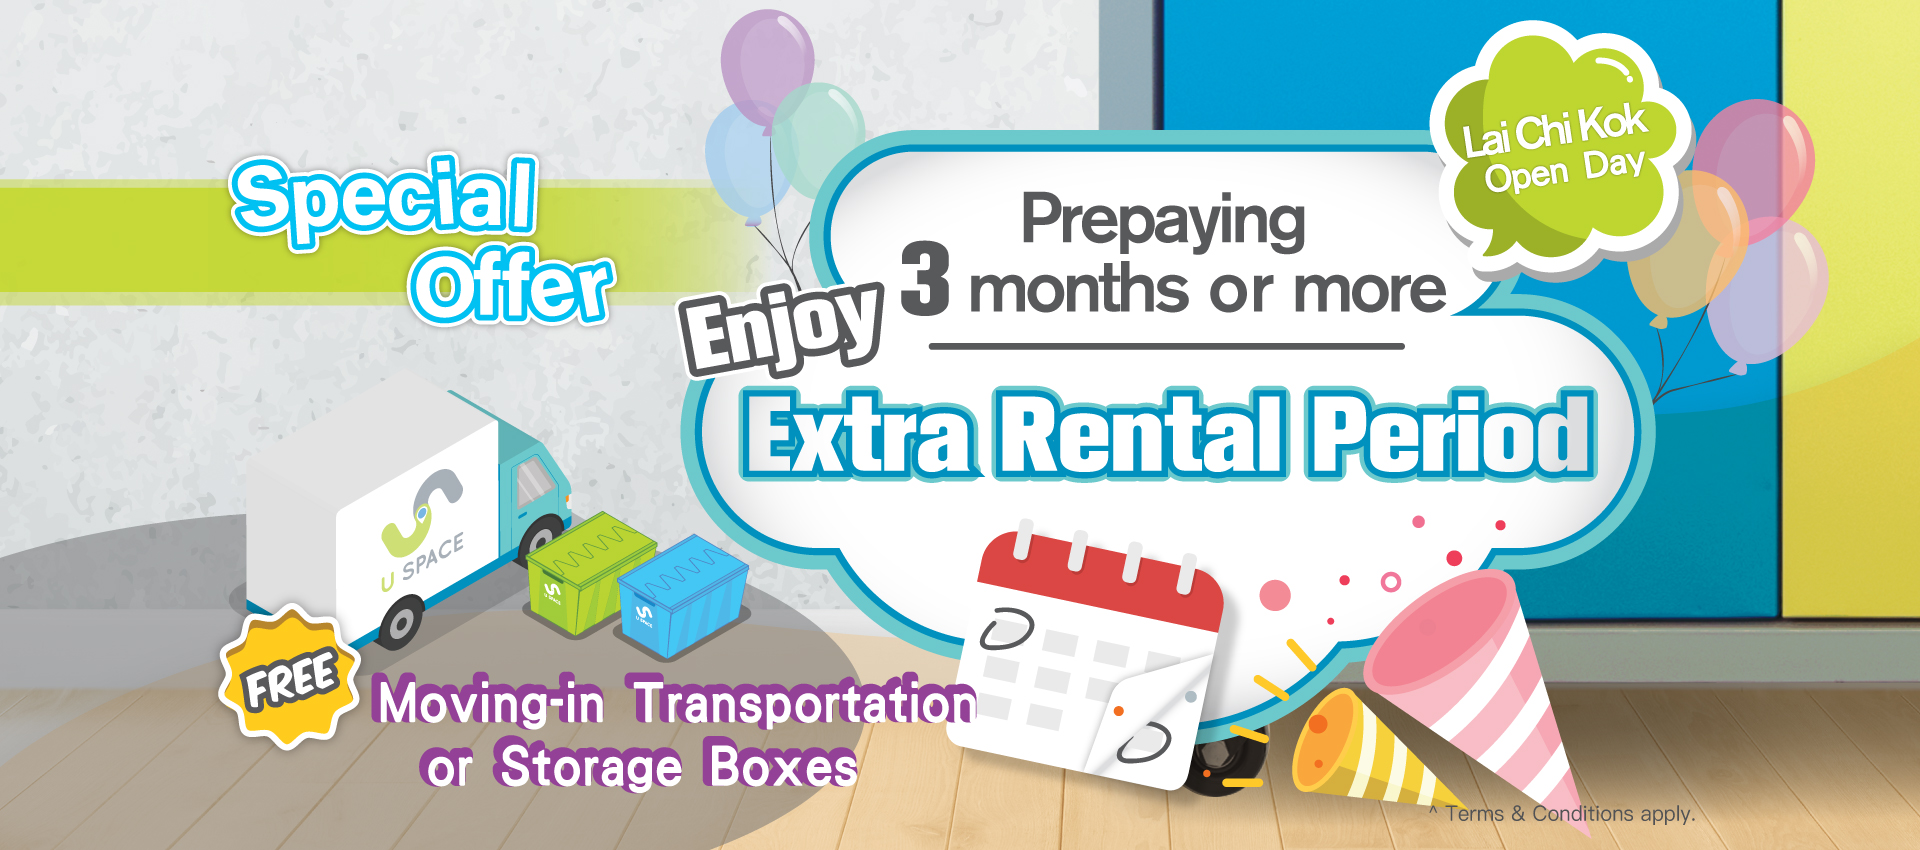 Lai Chi Kok Branch Open Day: extra 1 month for FREE upon prepaying for 3 months or more